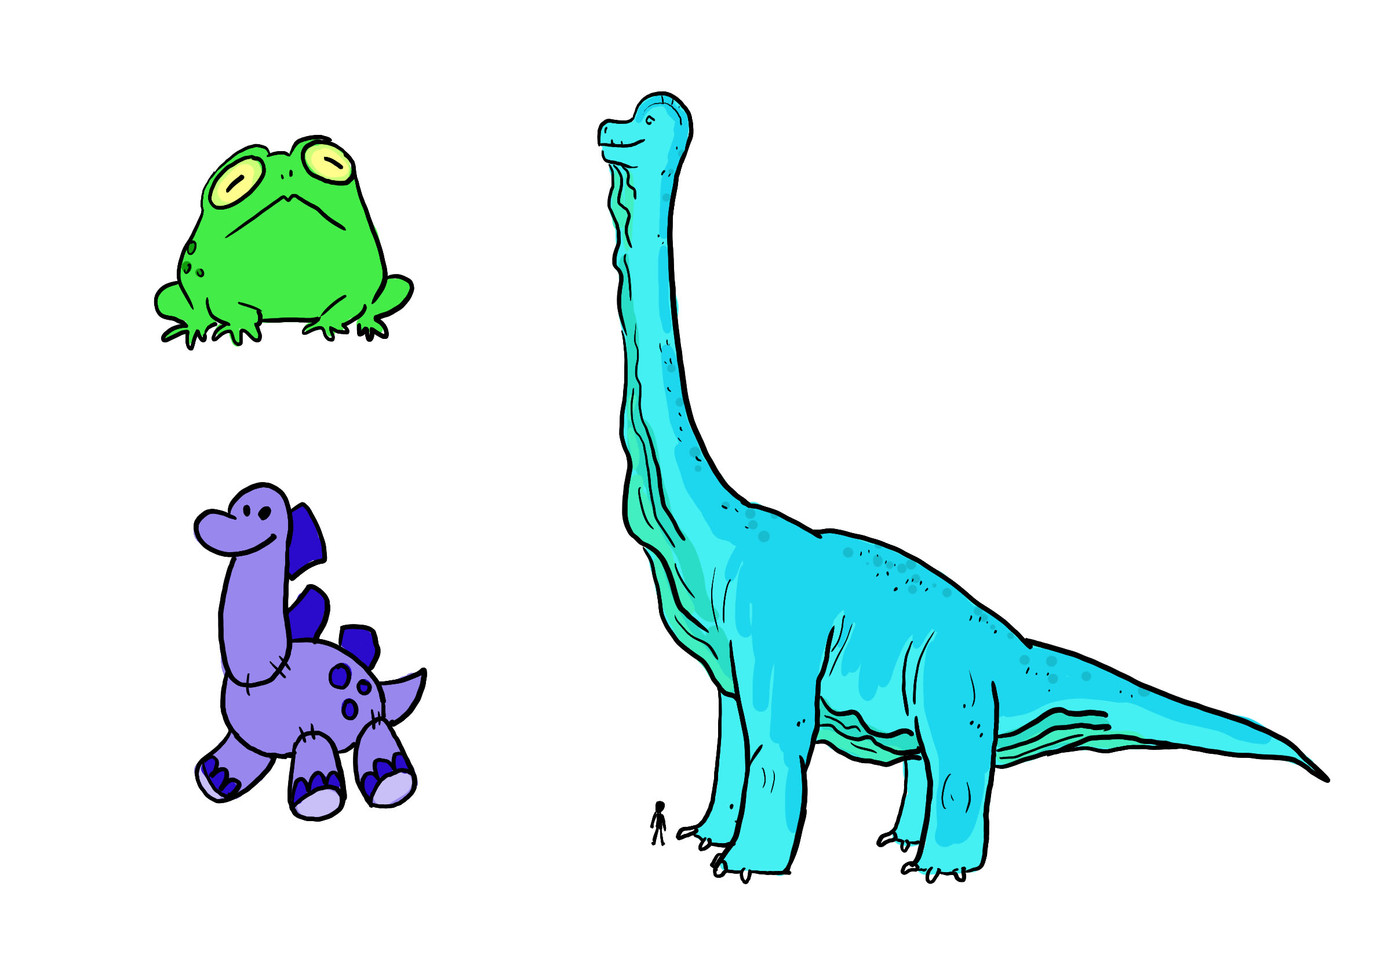 Frog, the toy dinosaur Gertie, and the real dinosaur, Mokele-mbembe